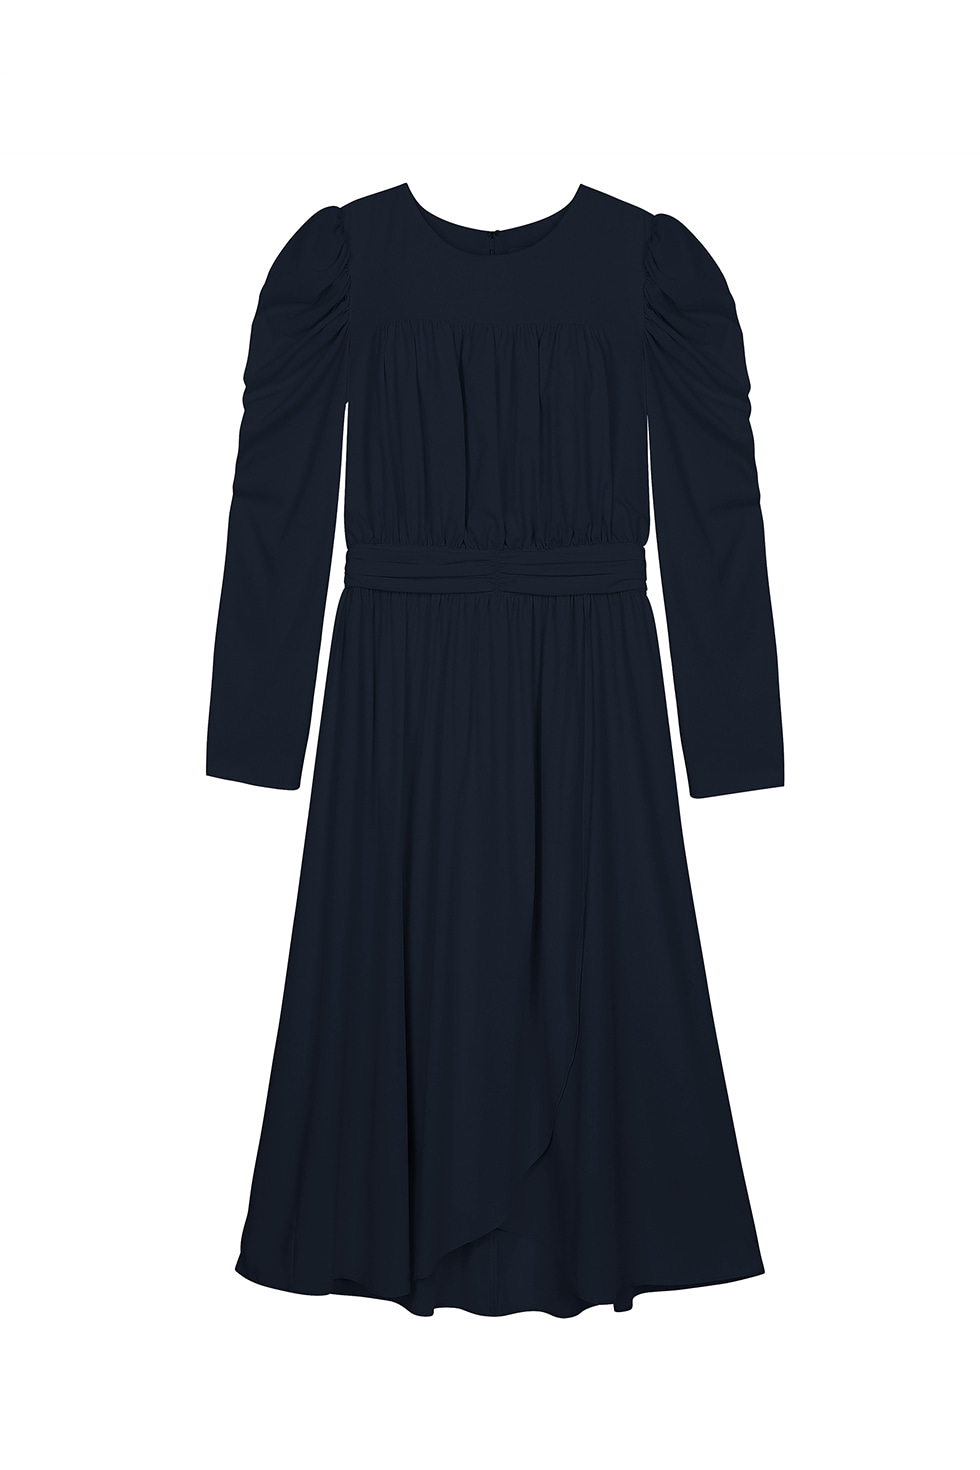 SHIRRING LONG DRESS - NAVY